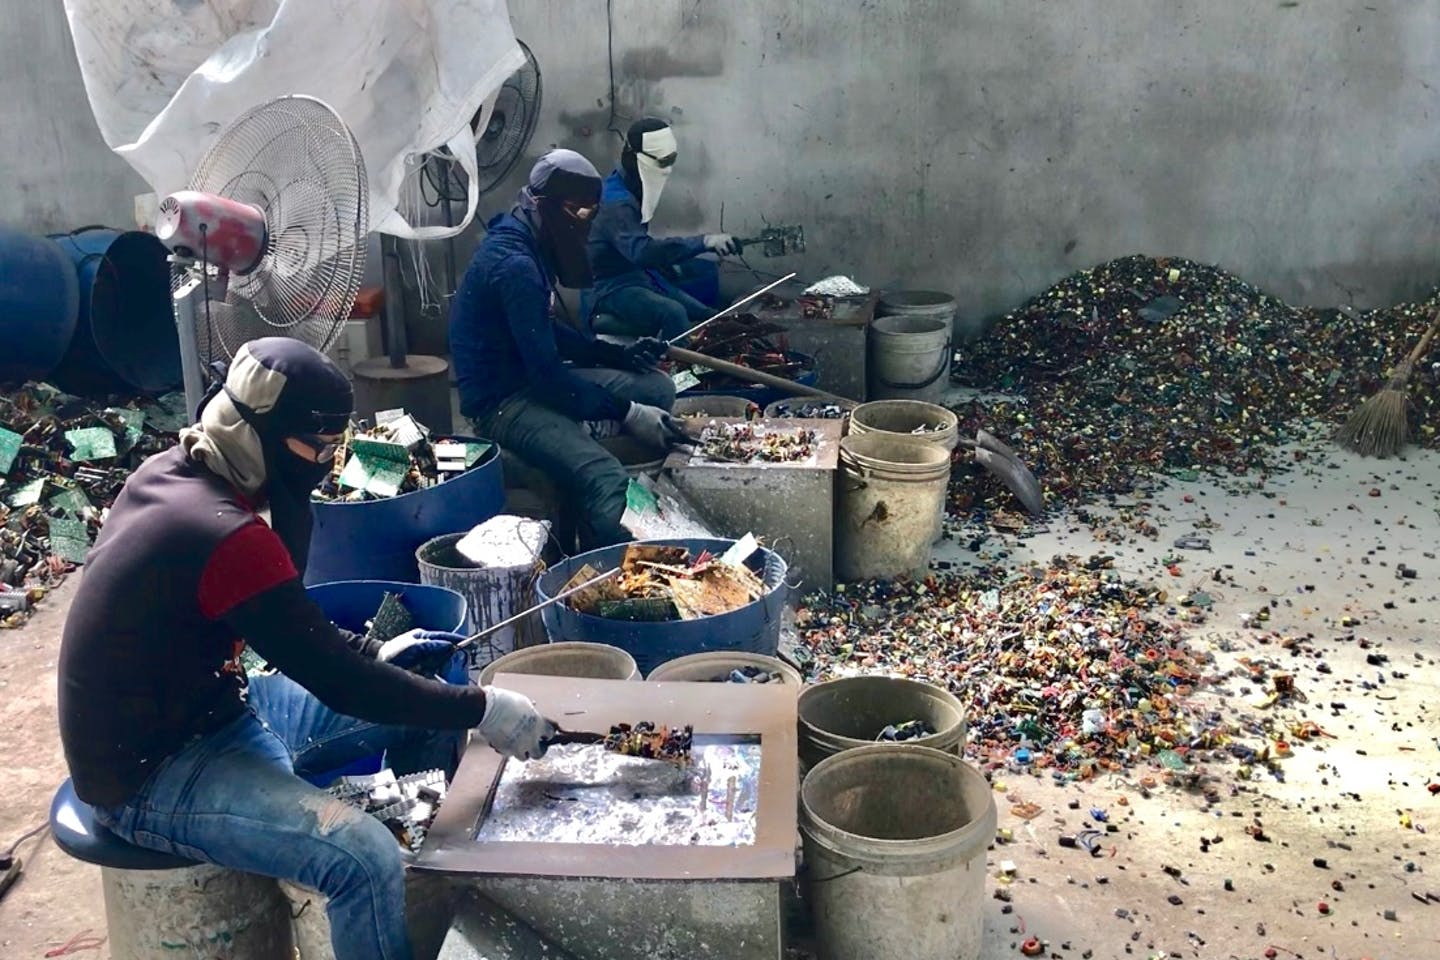 Electronic waste being processed in an informal setting in Thailand. Image: Basel Action Network